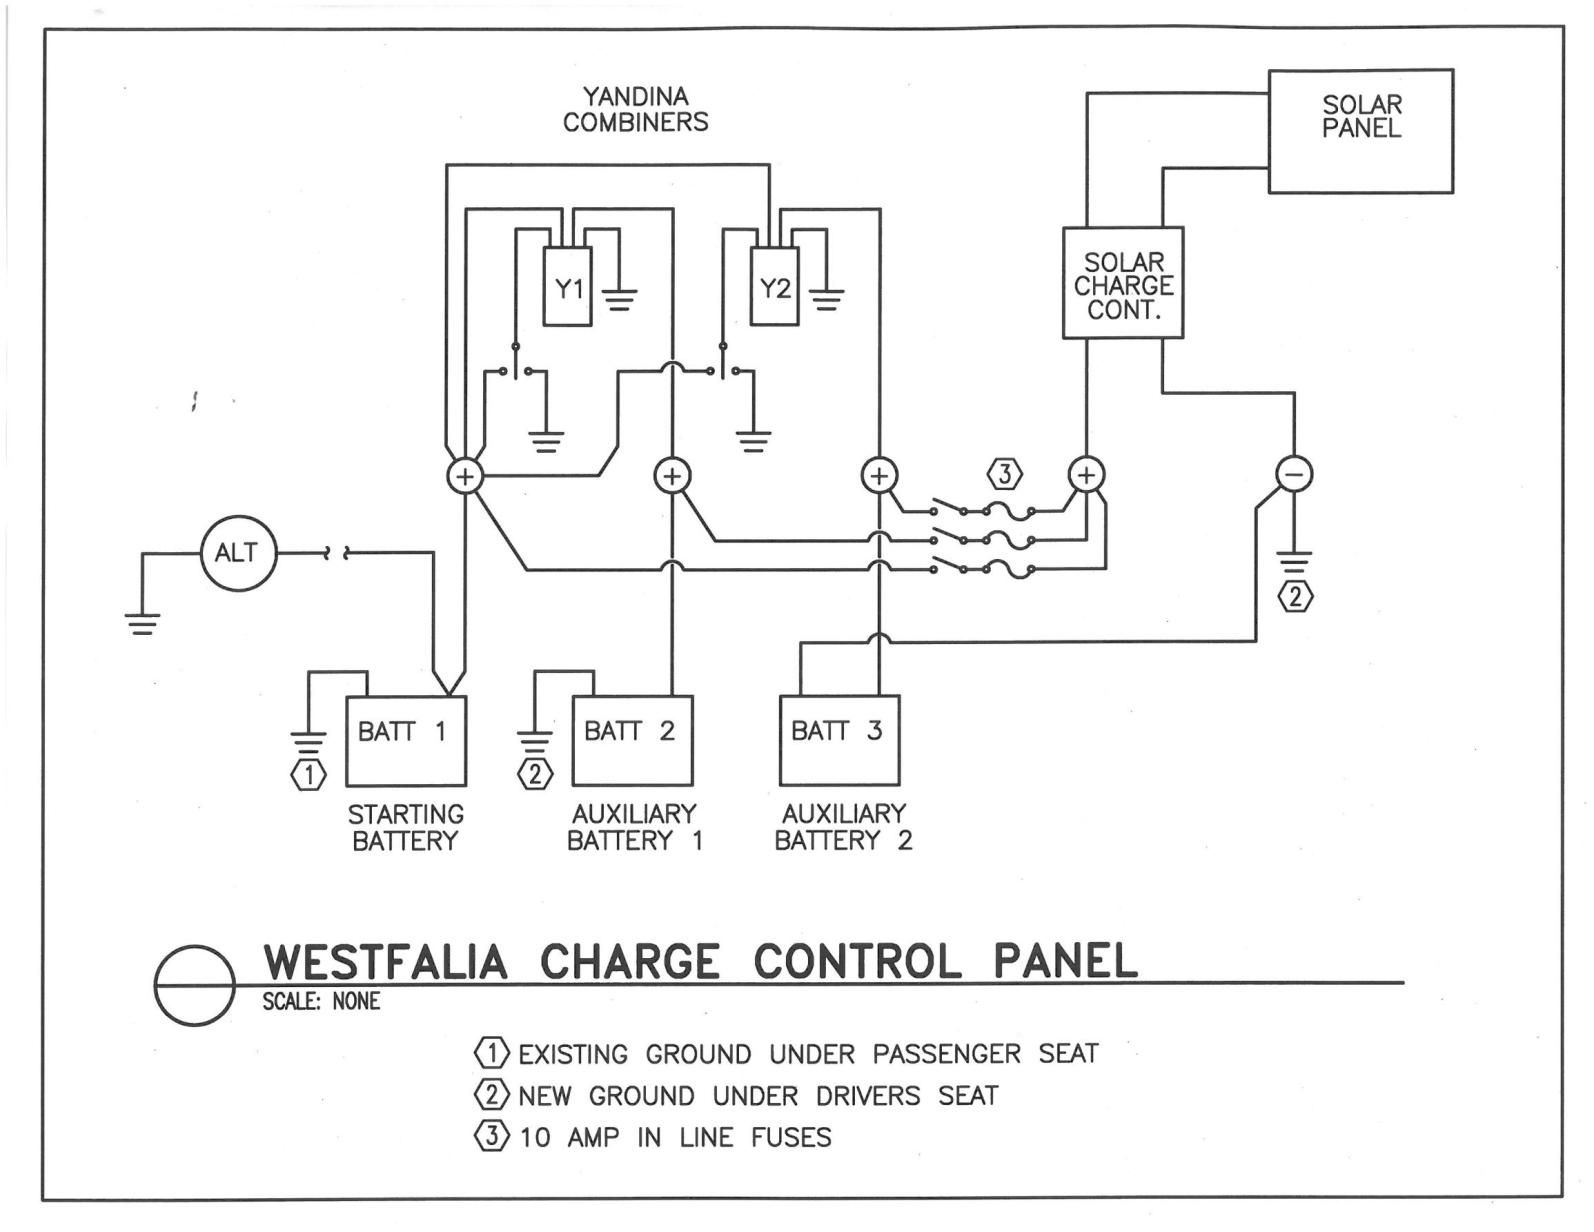 wiring diagram | Vanagon Westfalia | Pinterest | Diagram, Volkswagen